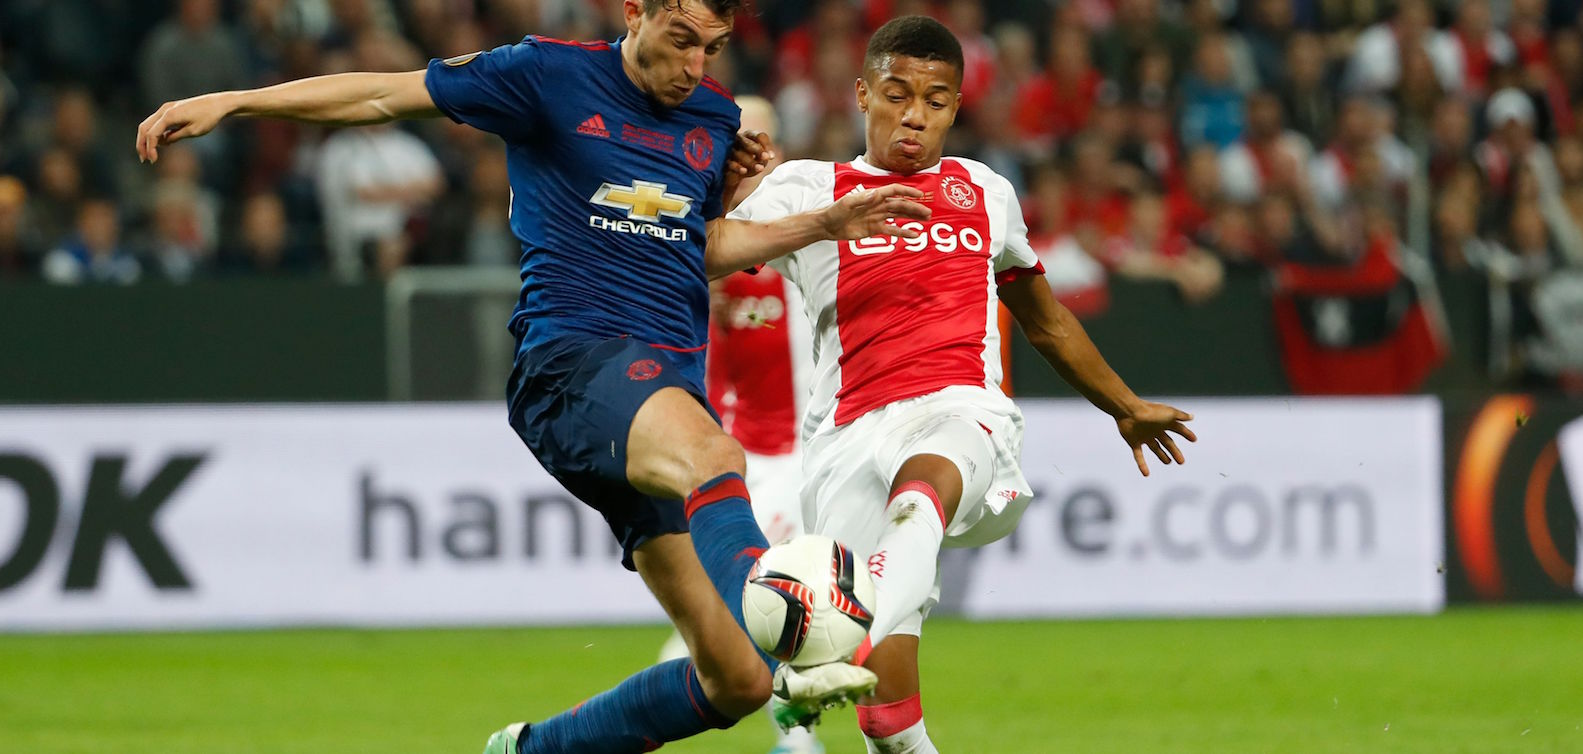 Ole Gunnar Solskjaer suggests Matteo Darmian and Marcos Rojo could play vs West Ham United